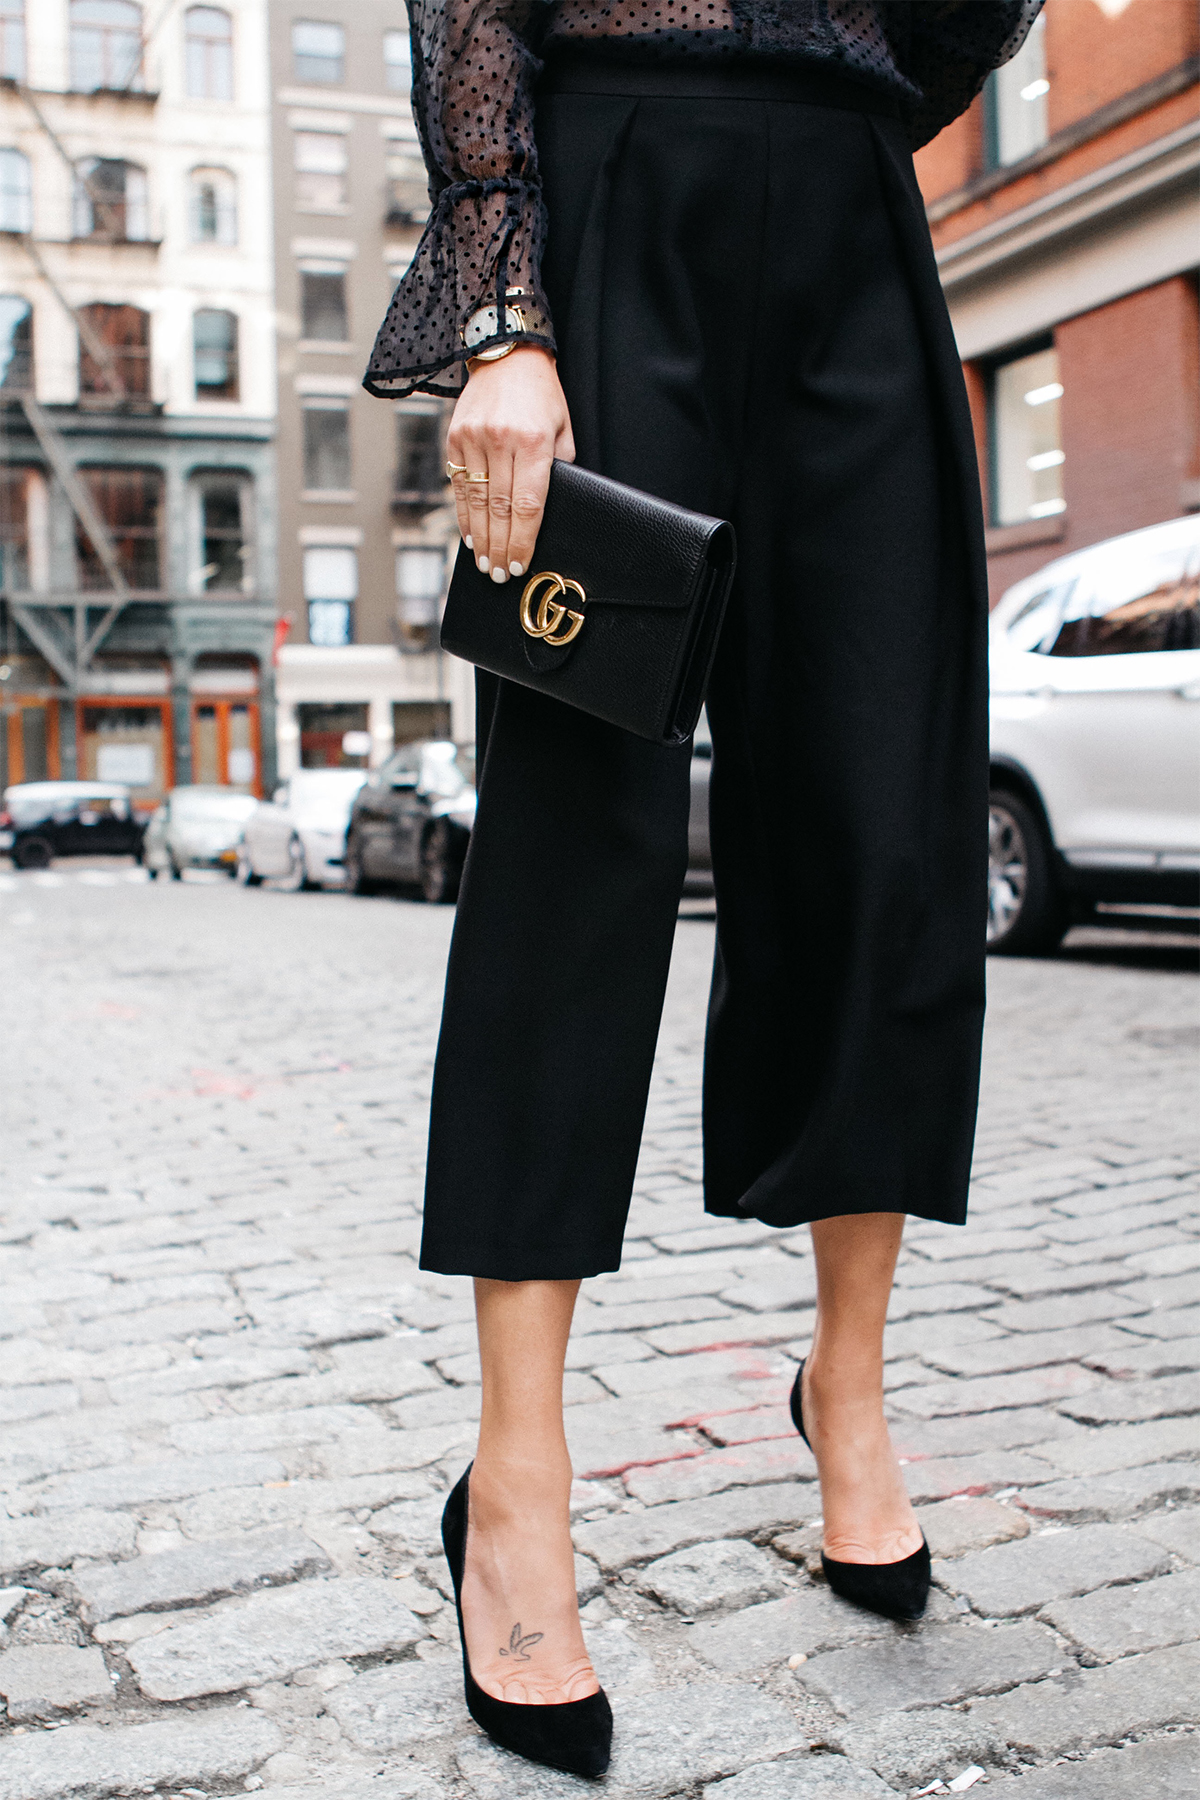 Black Culottes Gucci Marmont Handbag Christian Louboutin Black Pumps Fashion Jackson Dallas Blogger Fashion Blogger Street Style NYFW